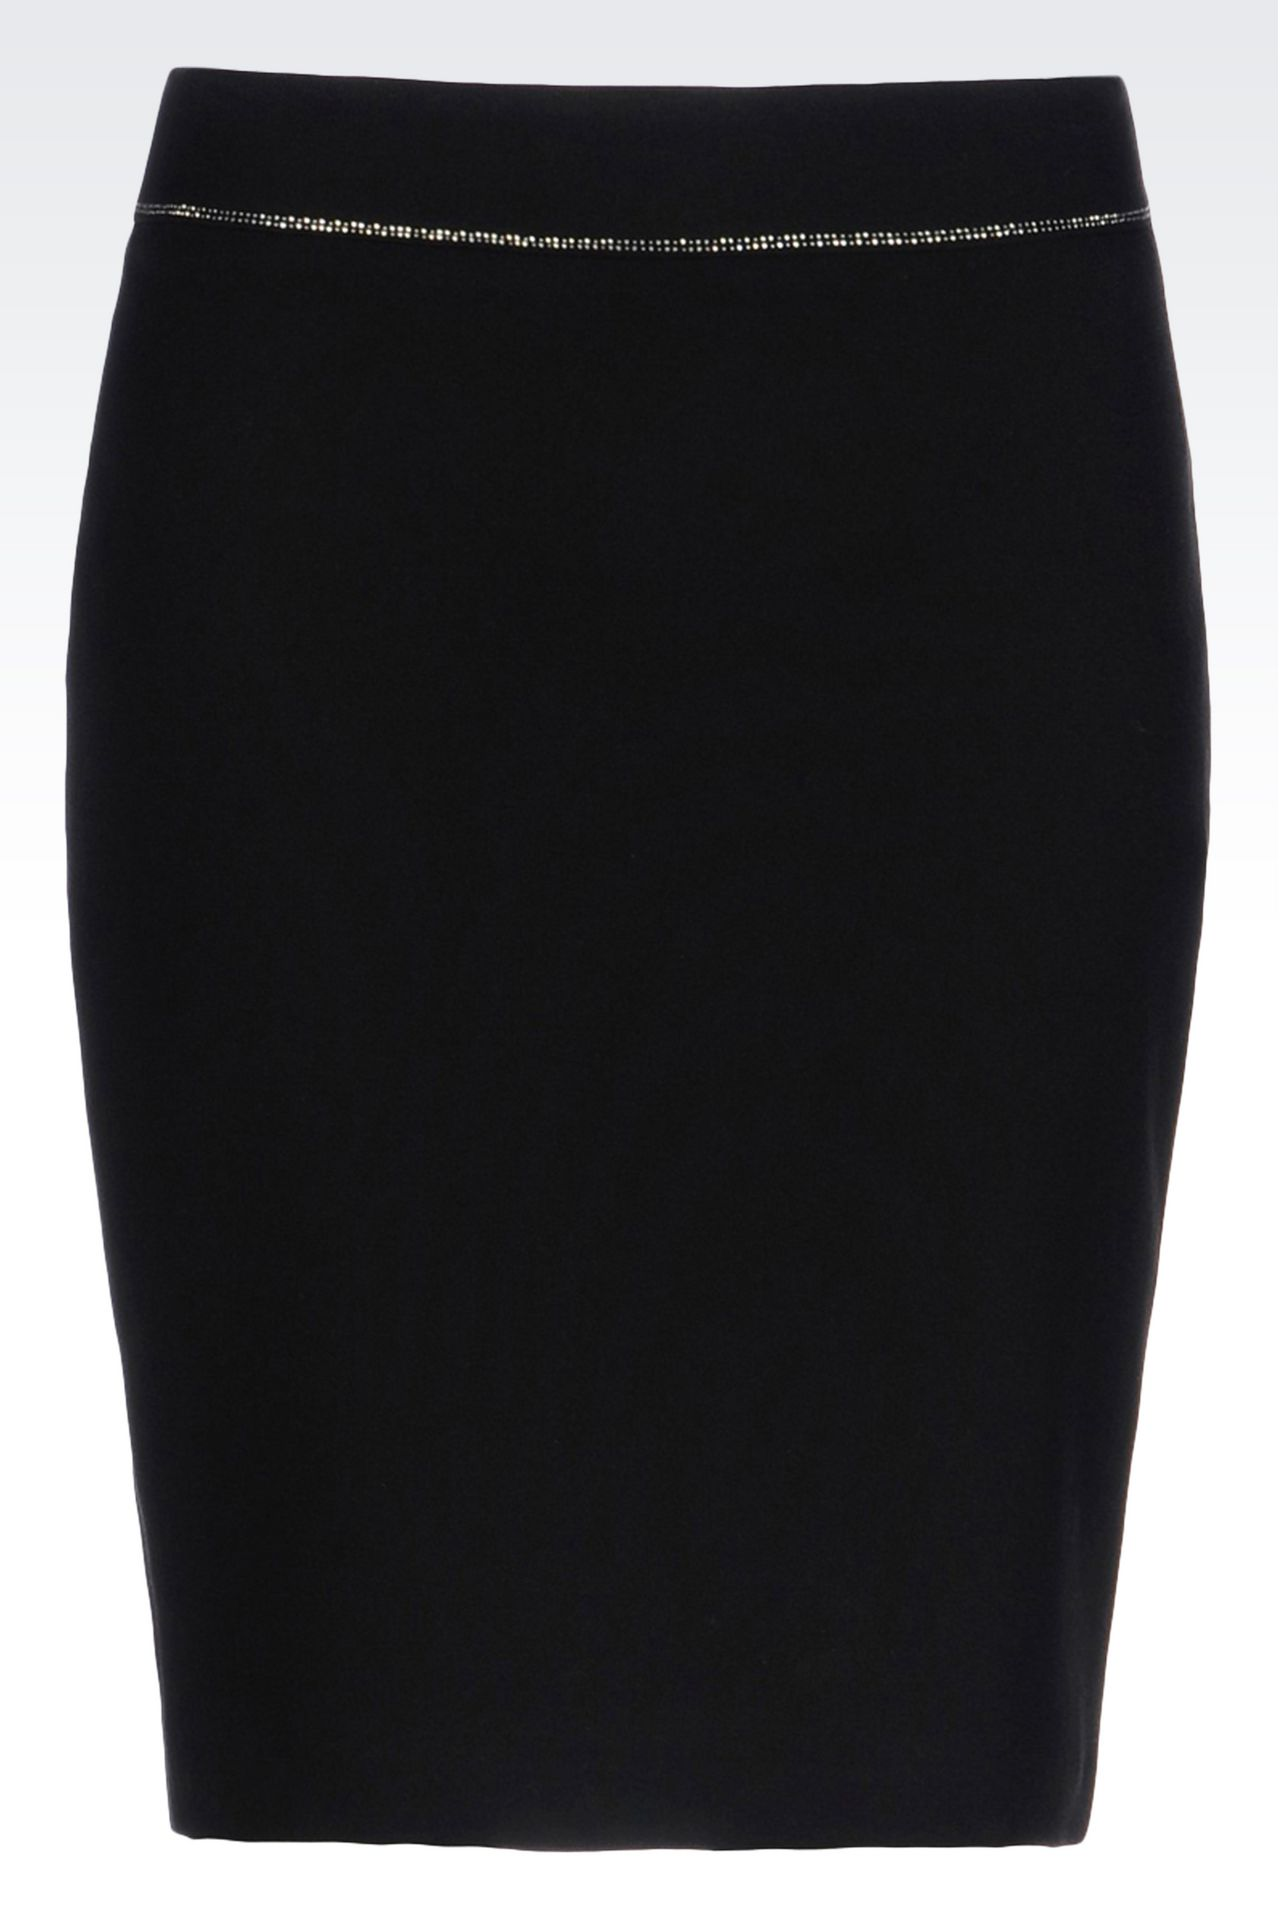 PENCIL SKIRT IN TECHNICAL VISCOSE: Knee length skirts Women by Armani - 0